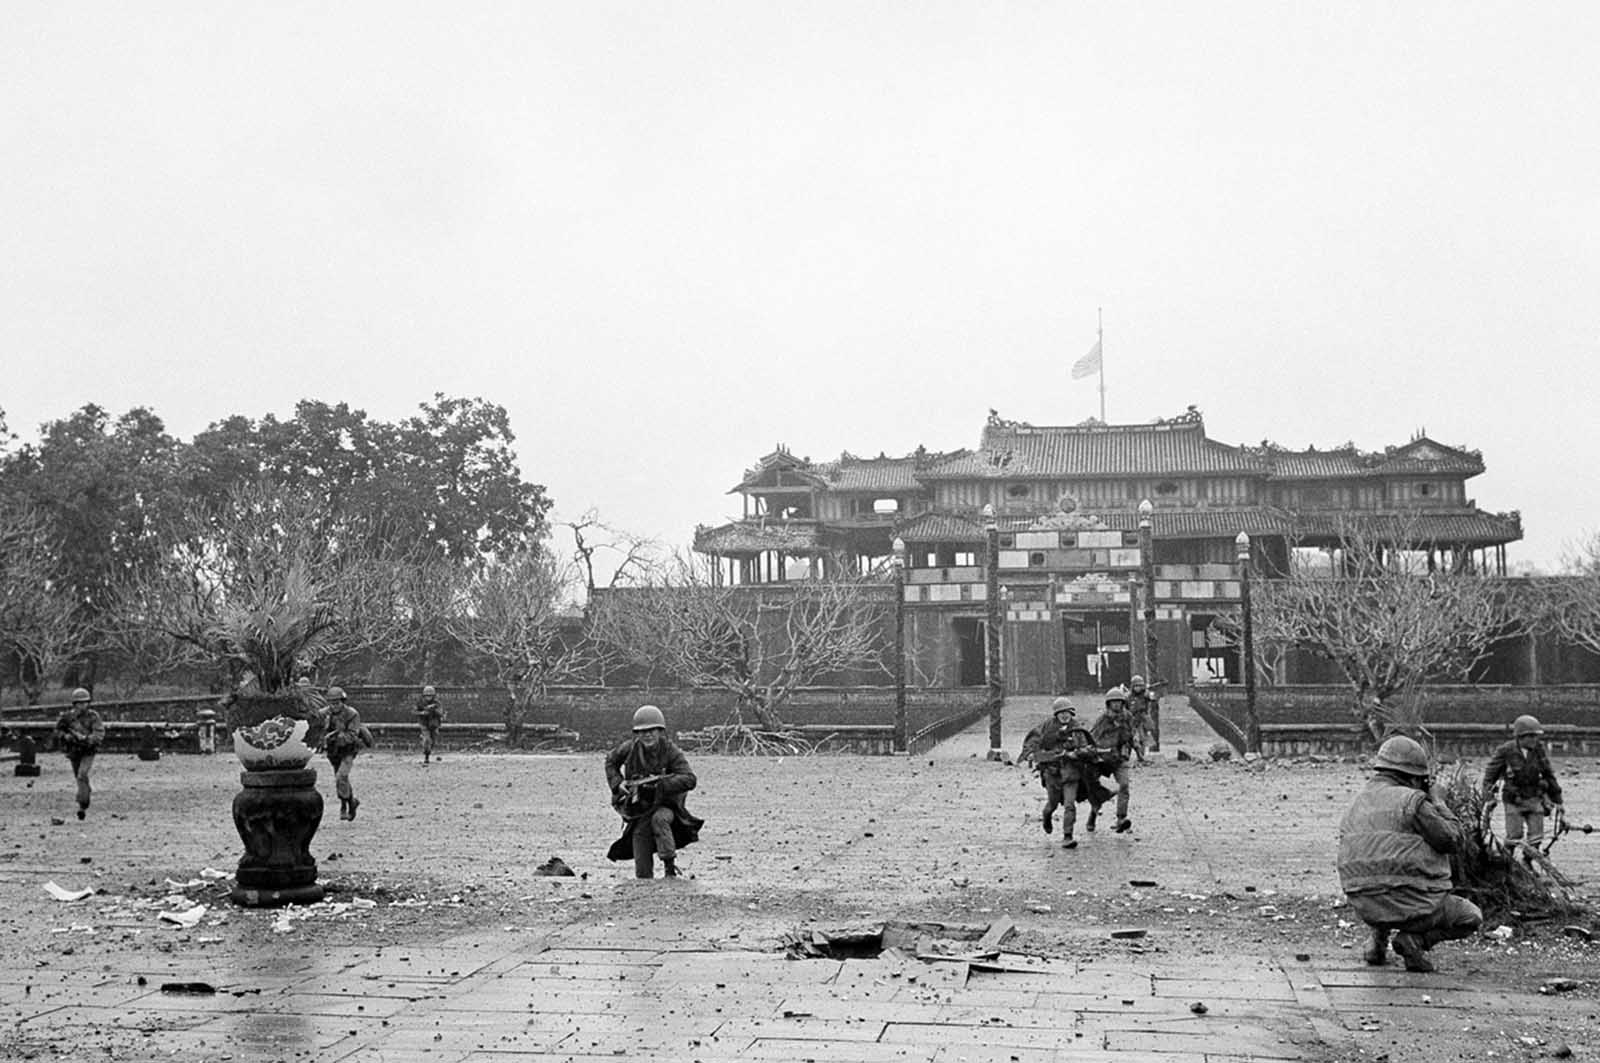 U.S. Marines and Vietnamese troops move through the grounds of the Imperial Palace in the old citadel area of Hue, Vietnam, on February 26, 1968, after seizing it from Communist hands. The heavy damage was the result of the artillery, air, and mortar pounding the area received for 25 days while the Viet Cong/NVA held the area.